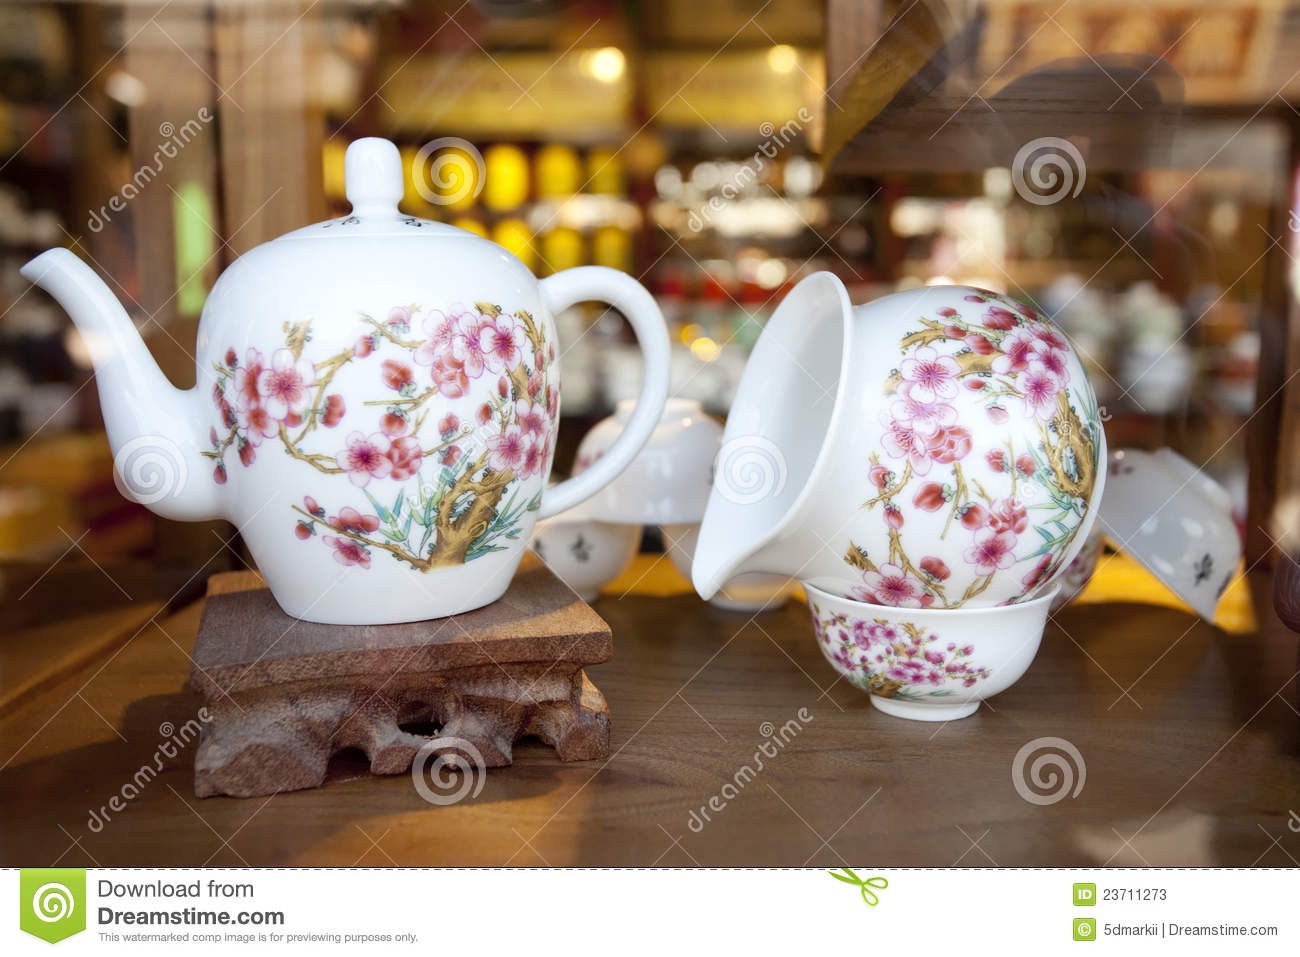 park tea room essay A hotel and restaurants tourism essay print reference this   specially disable people expecting the assistance or disable access in room and  coffee and tea.